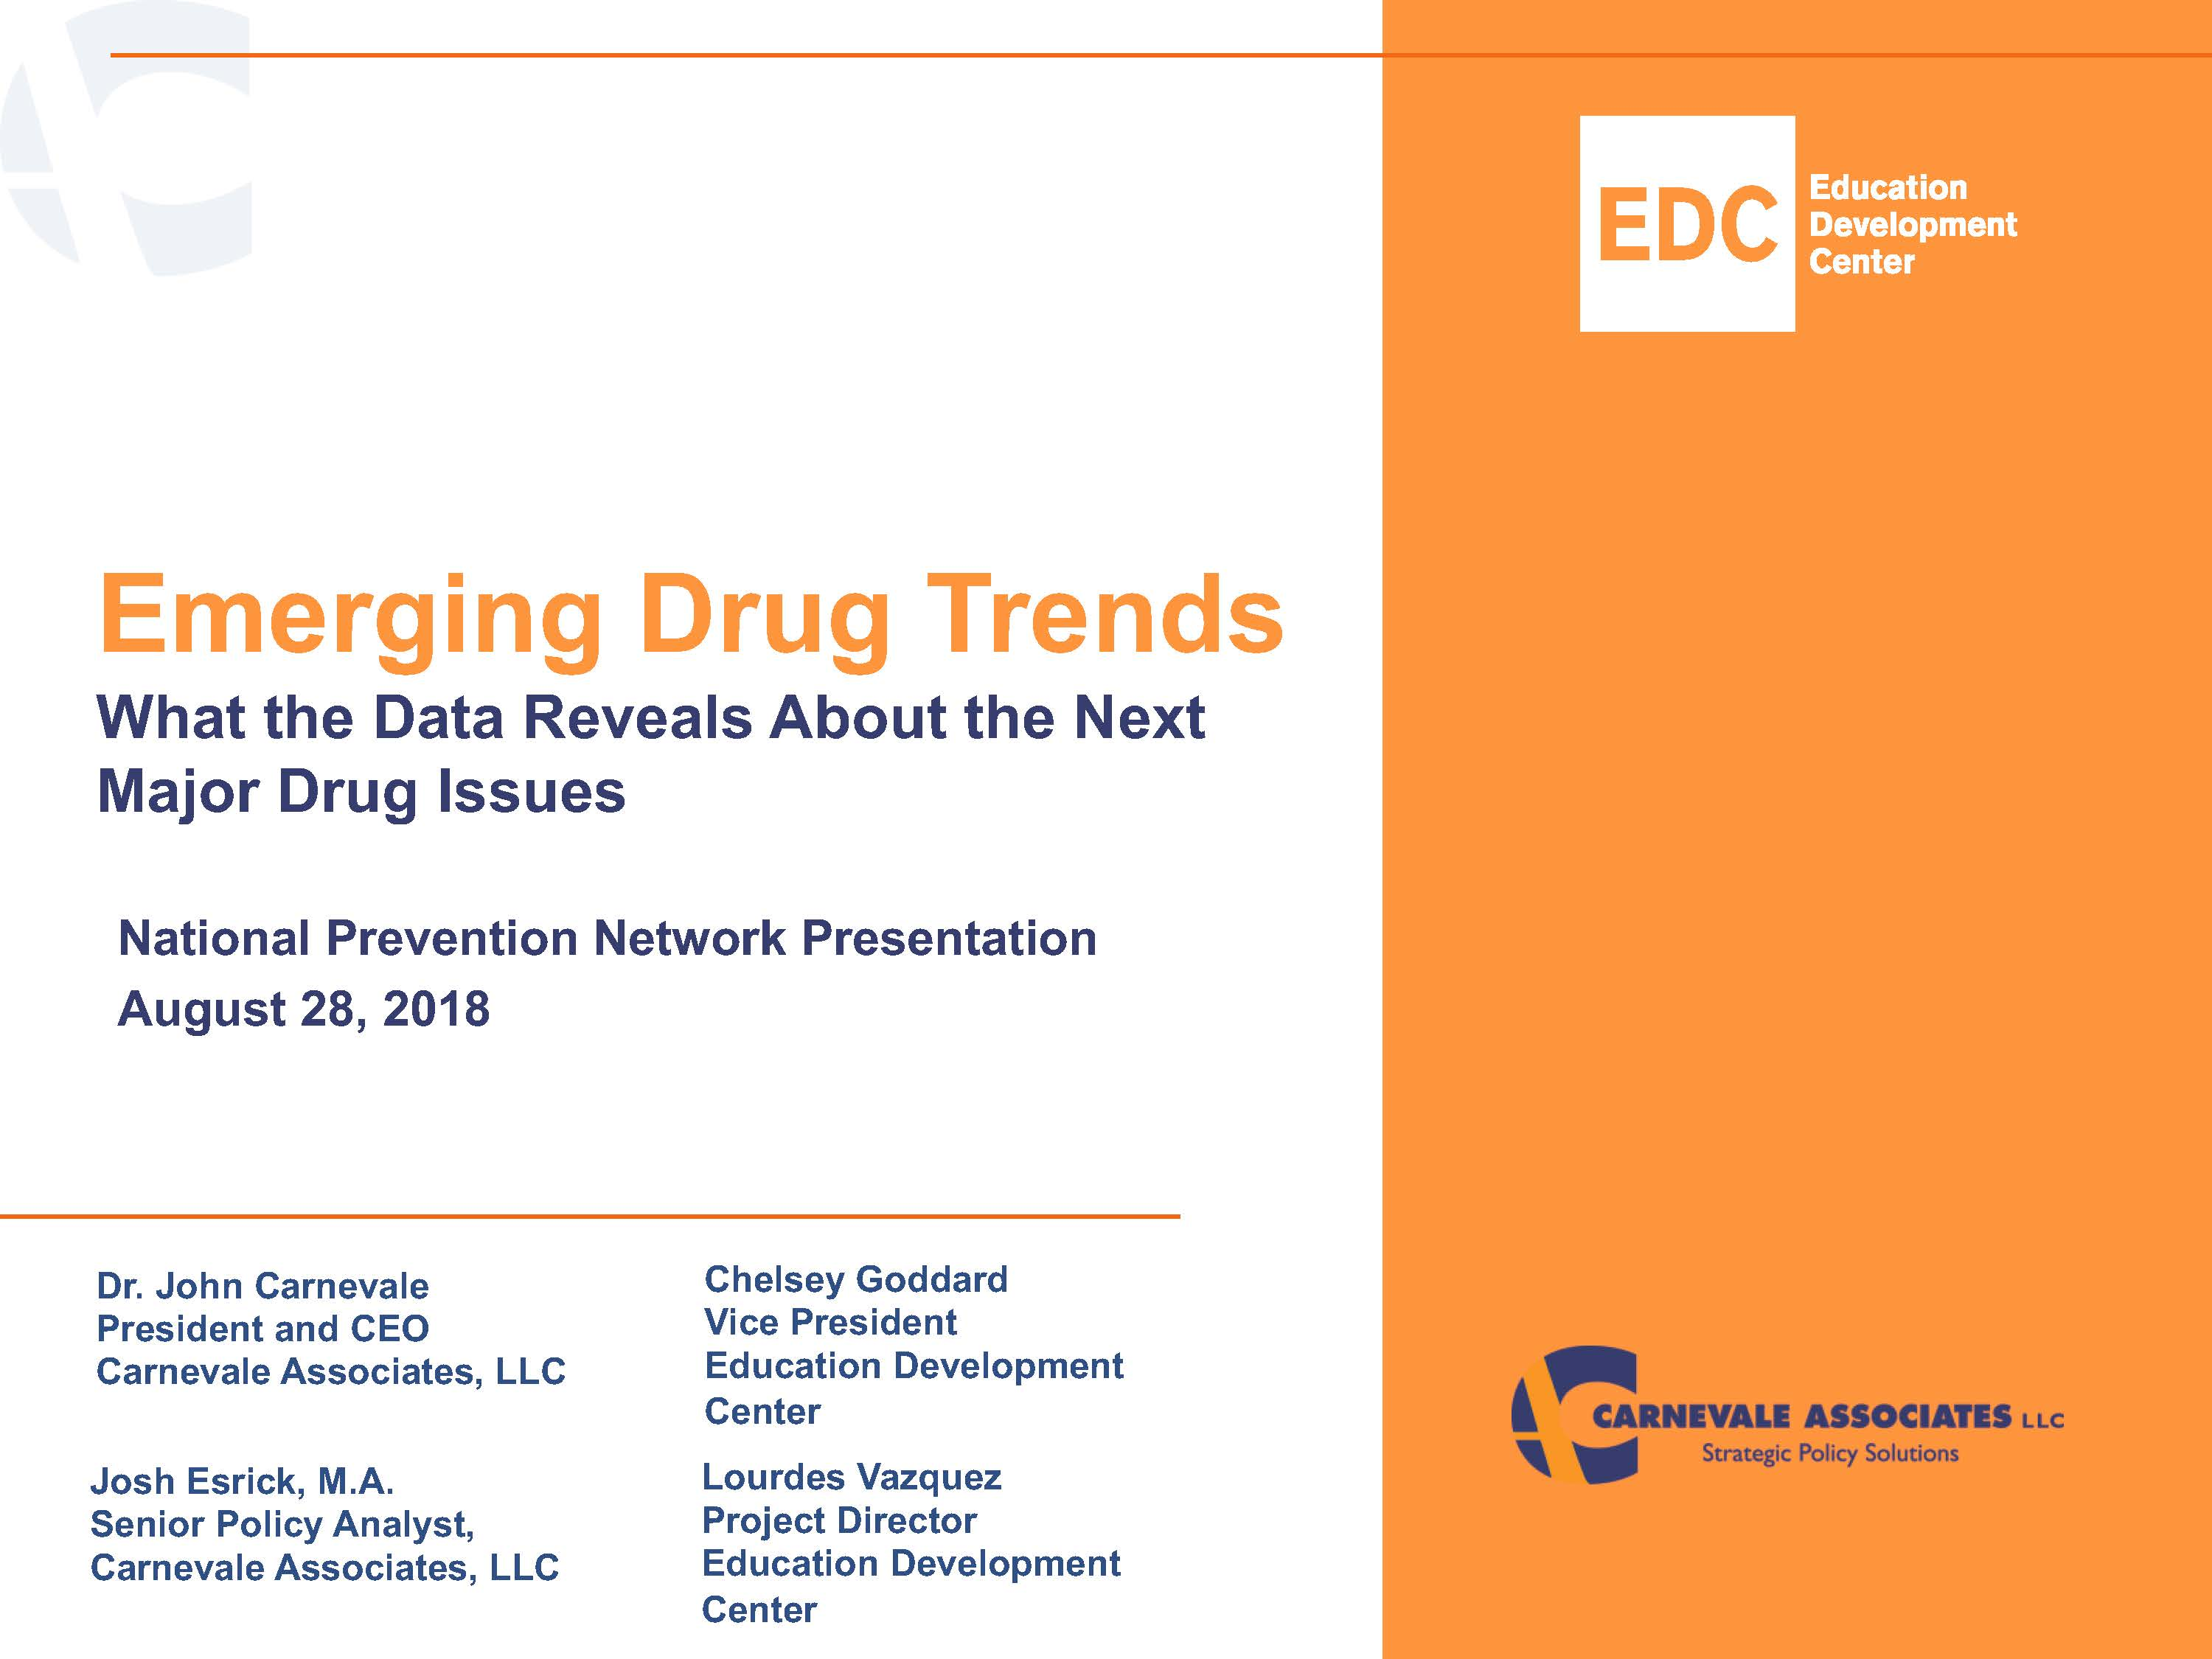 Emerging Drug Trends Presentation: Data & Prevention